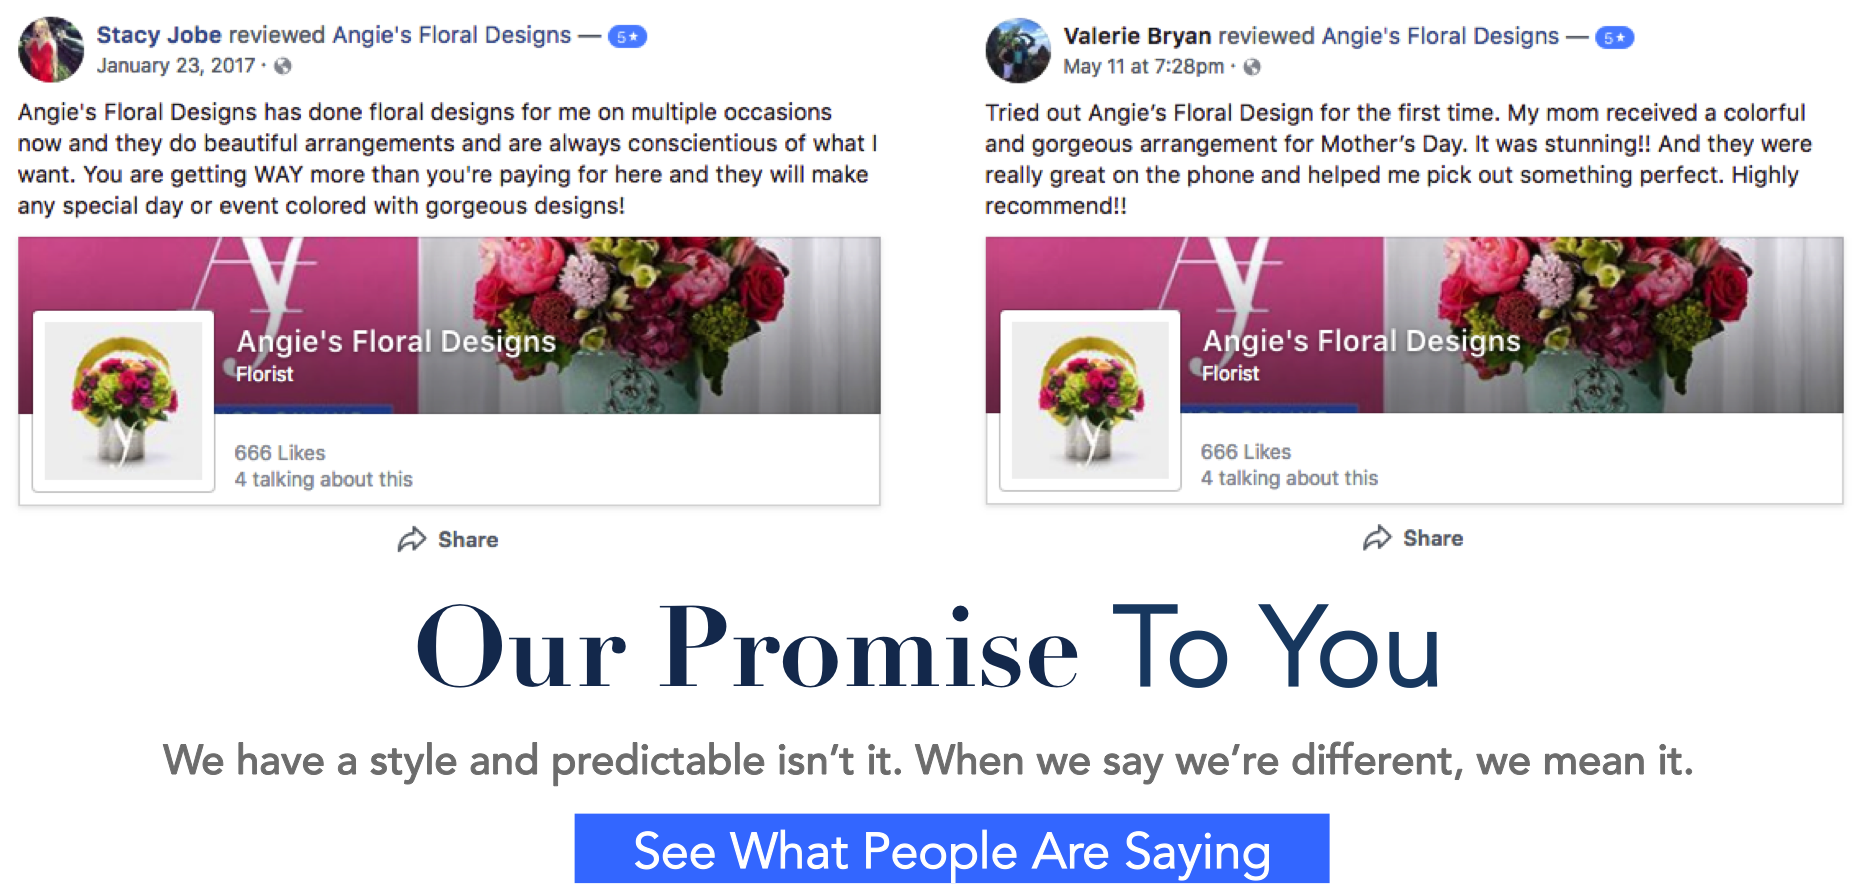 0-angies-reviews-floral-design-reviews-79912-handcrafted-gifts-same-day-delivery-roses-flowershop-el-paso-texas-79912-shop-online-flowers-florist-best-florist.png